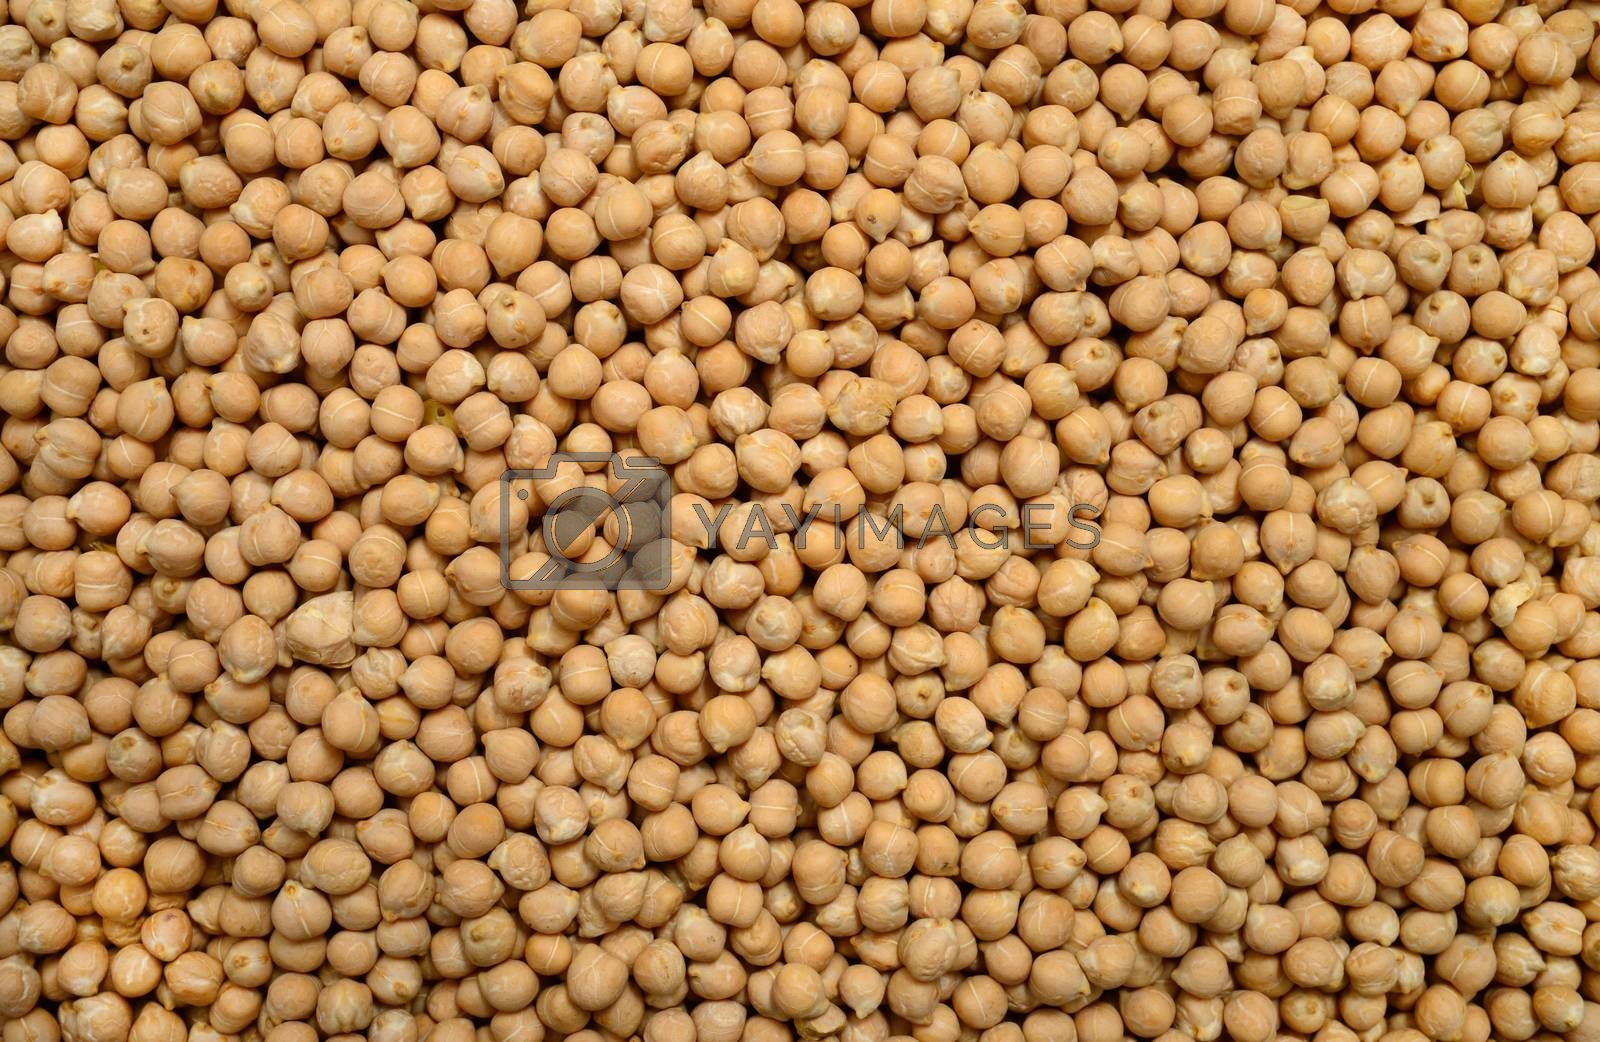 chickpeas beans seeds food texture pattern background